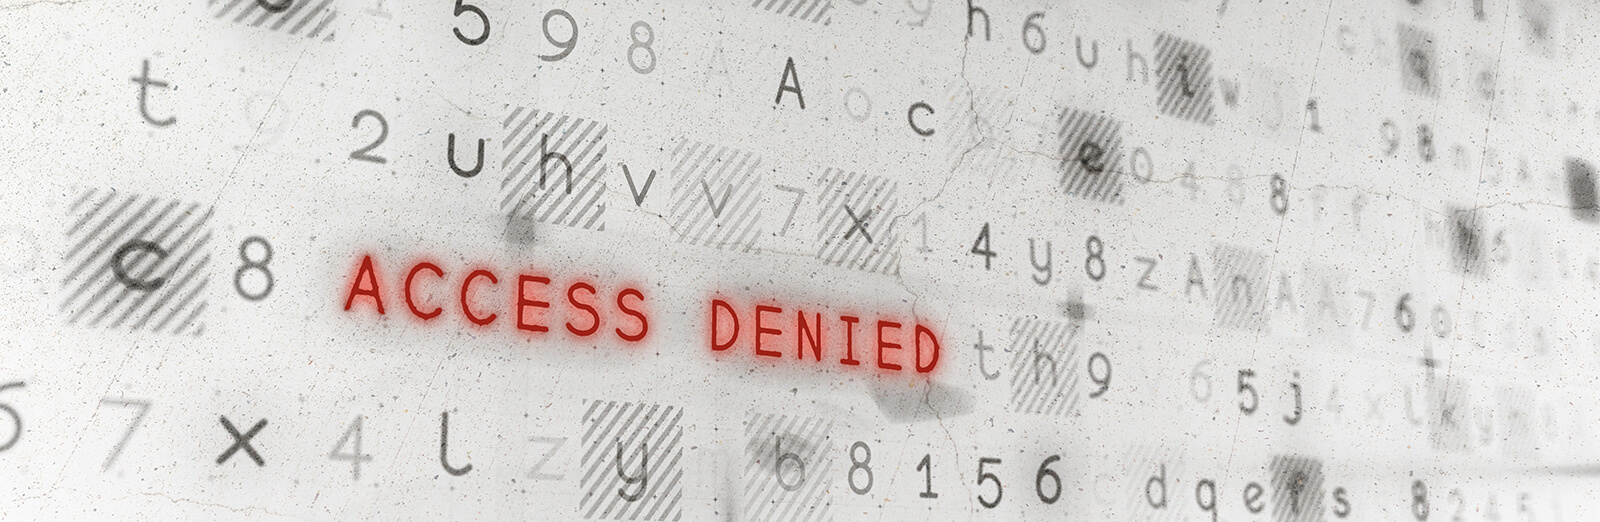 'Access Denied' in red lettering against an abstract background of numbers and letters